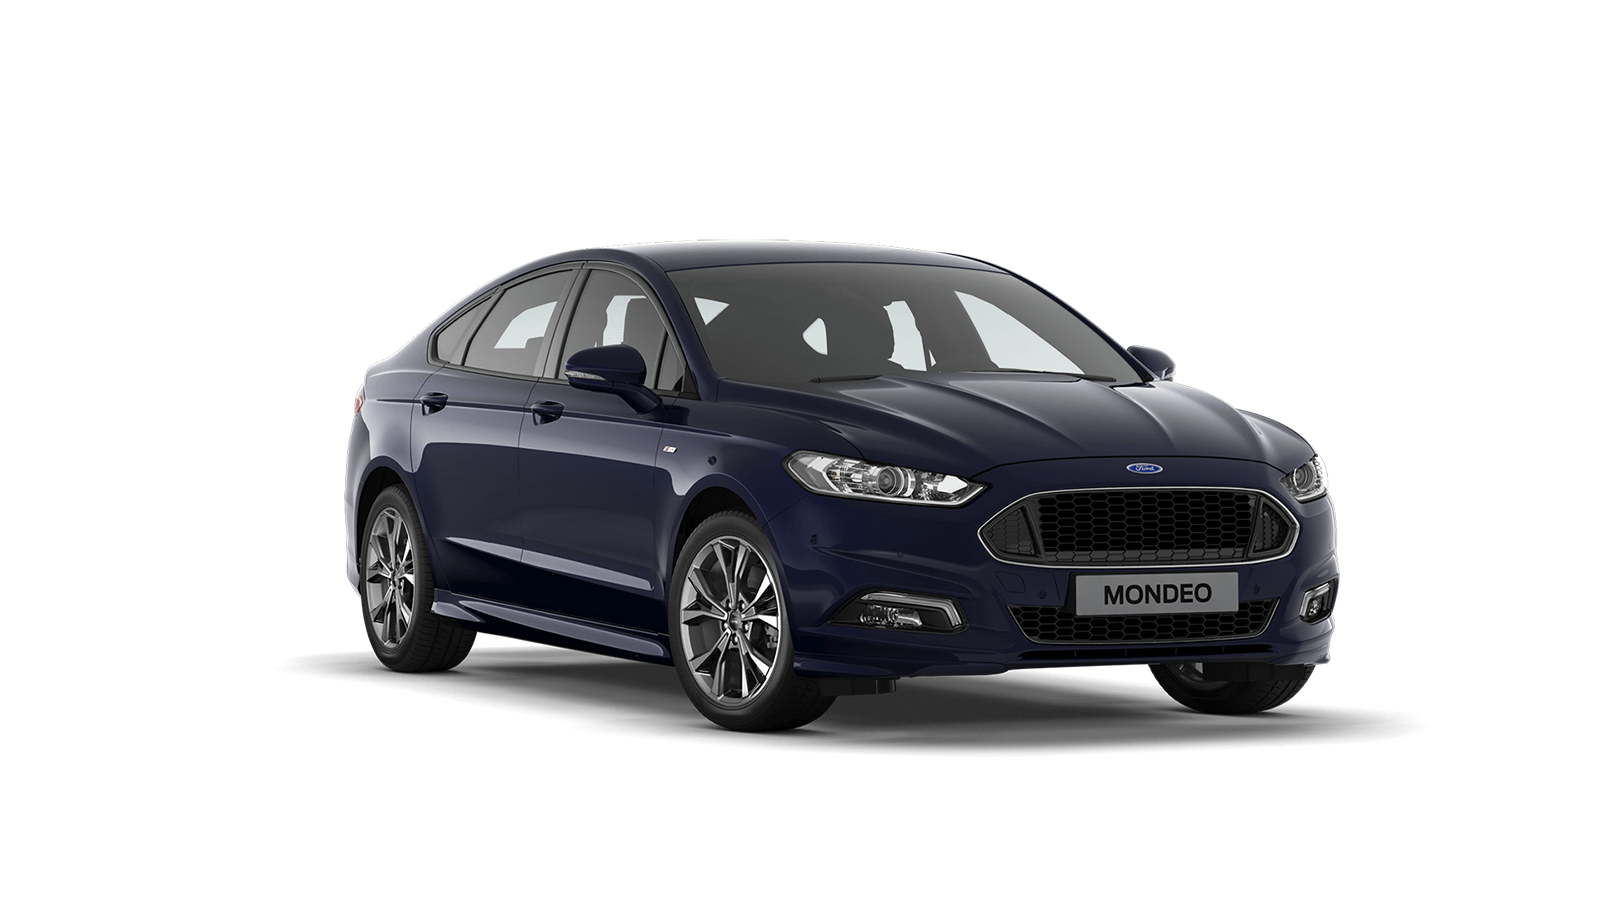 Ford Mondeo (automat)